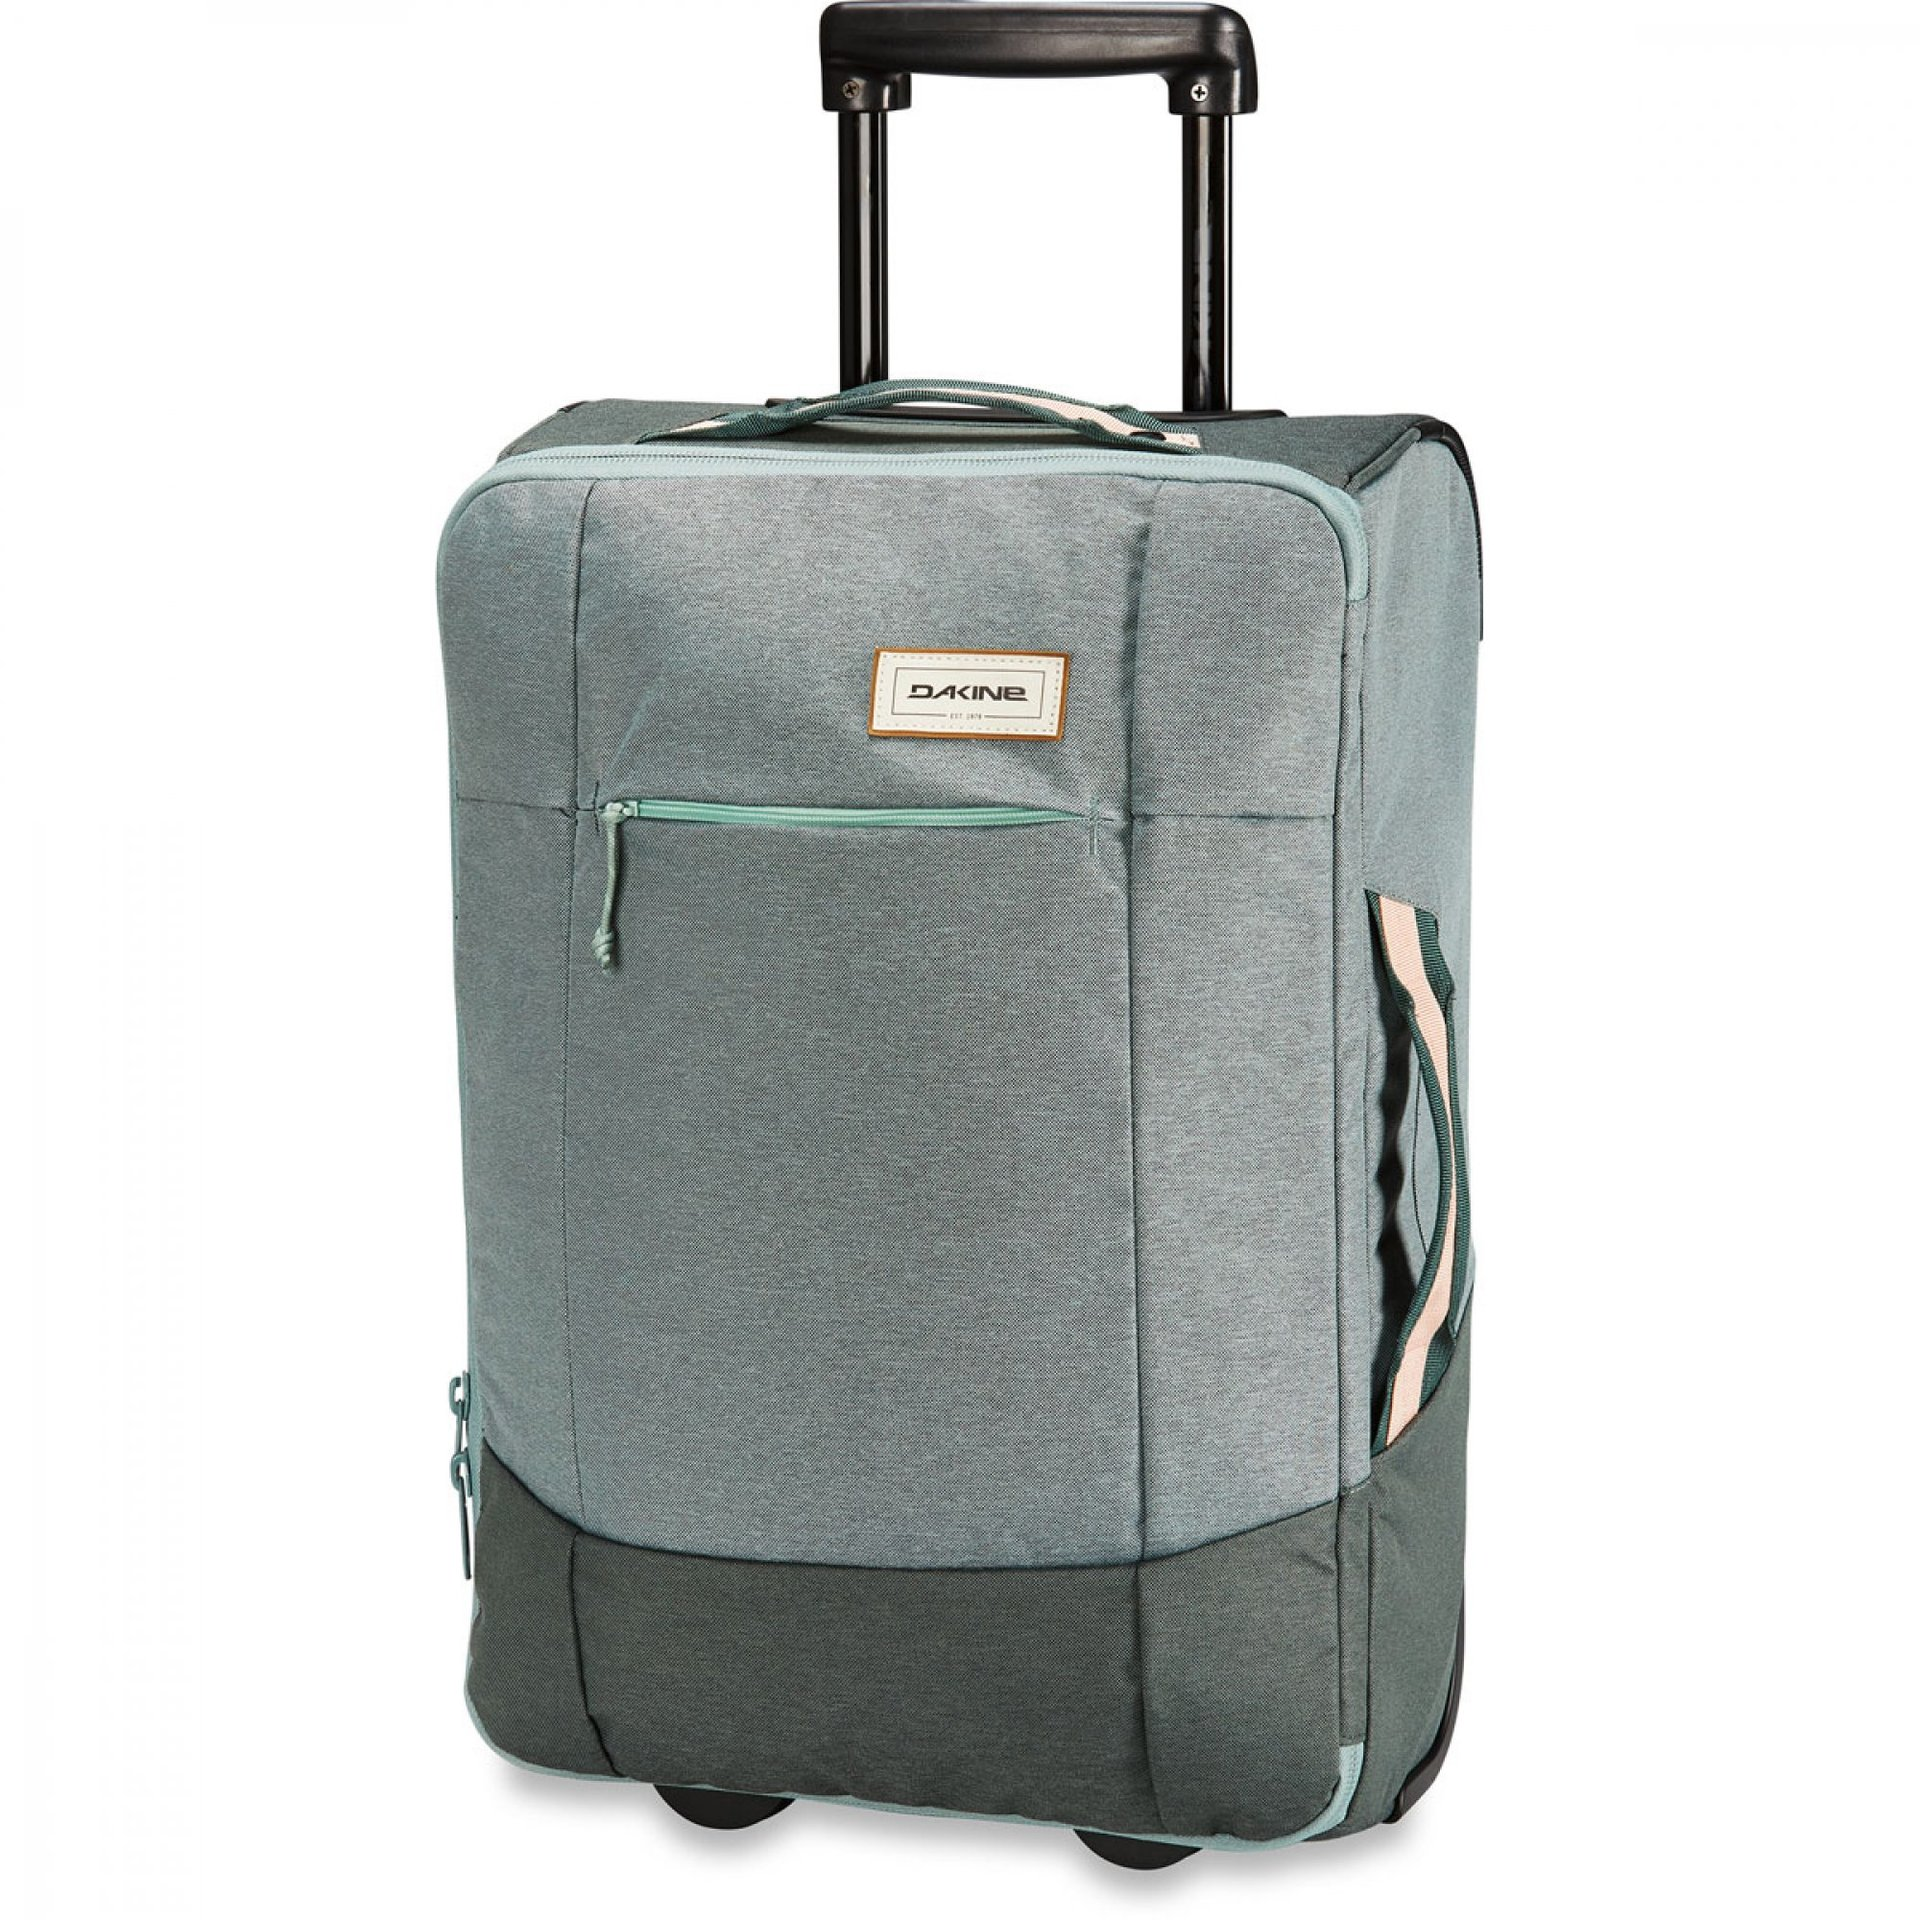 TORBA PODRÓŻNA DAKINE CARRY ON EQ 40L BRIGHTON